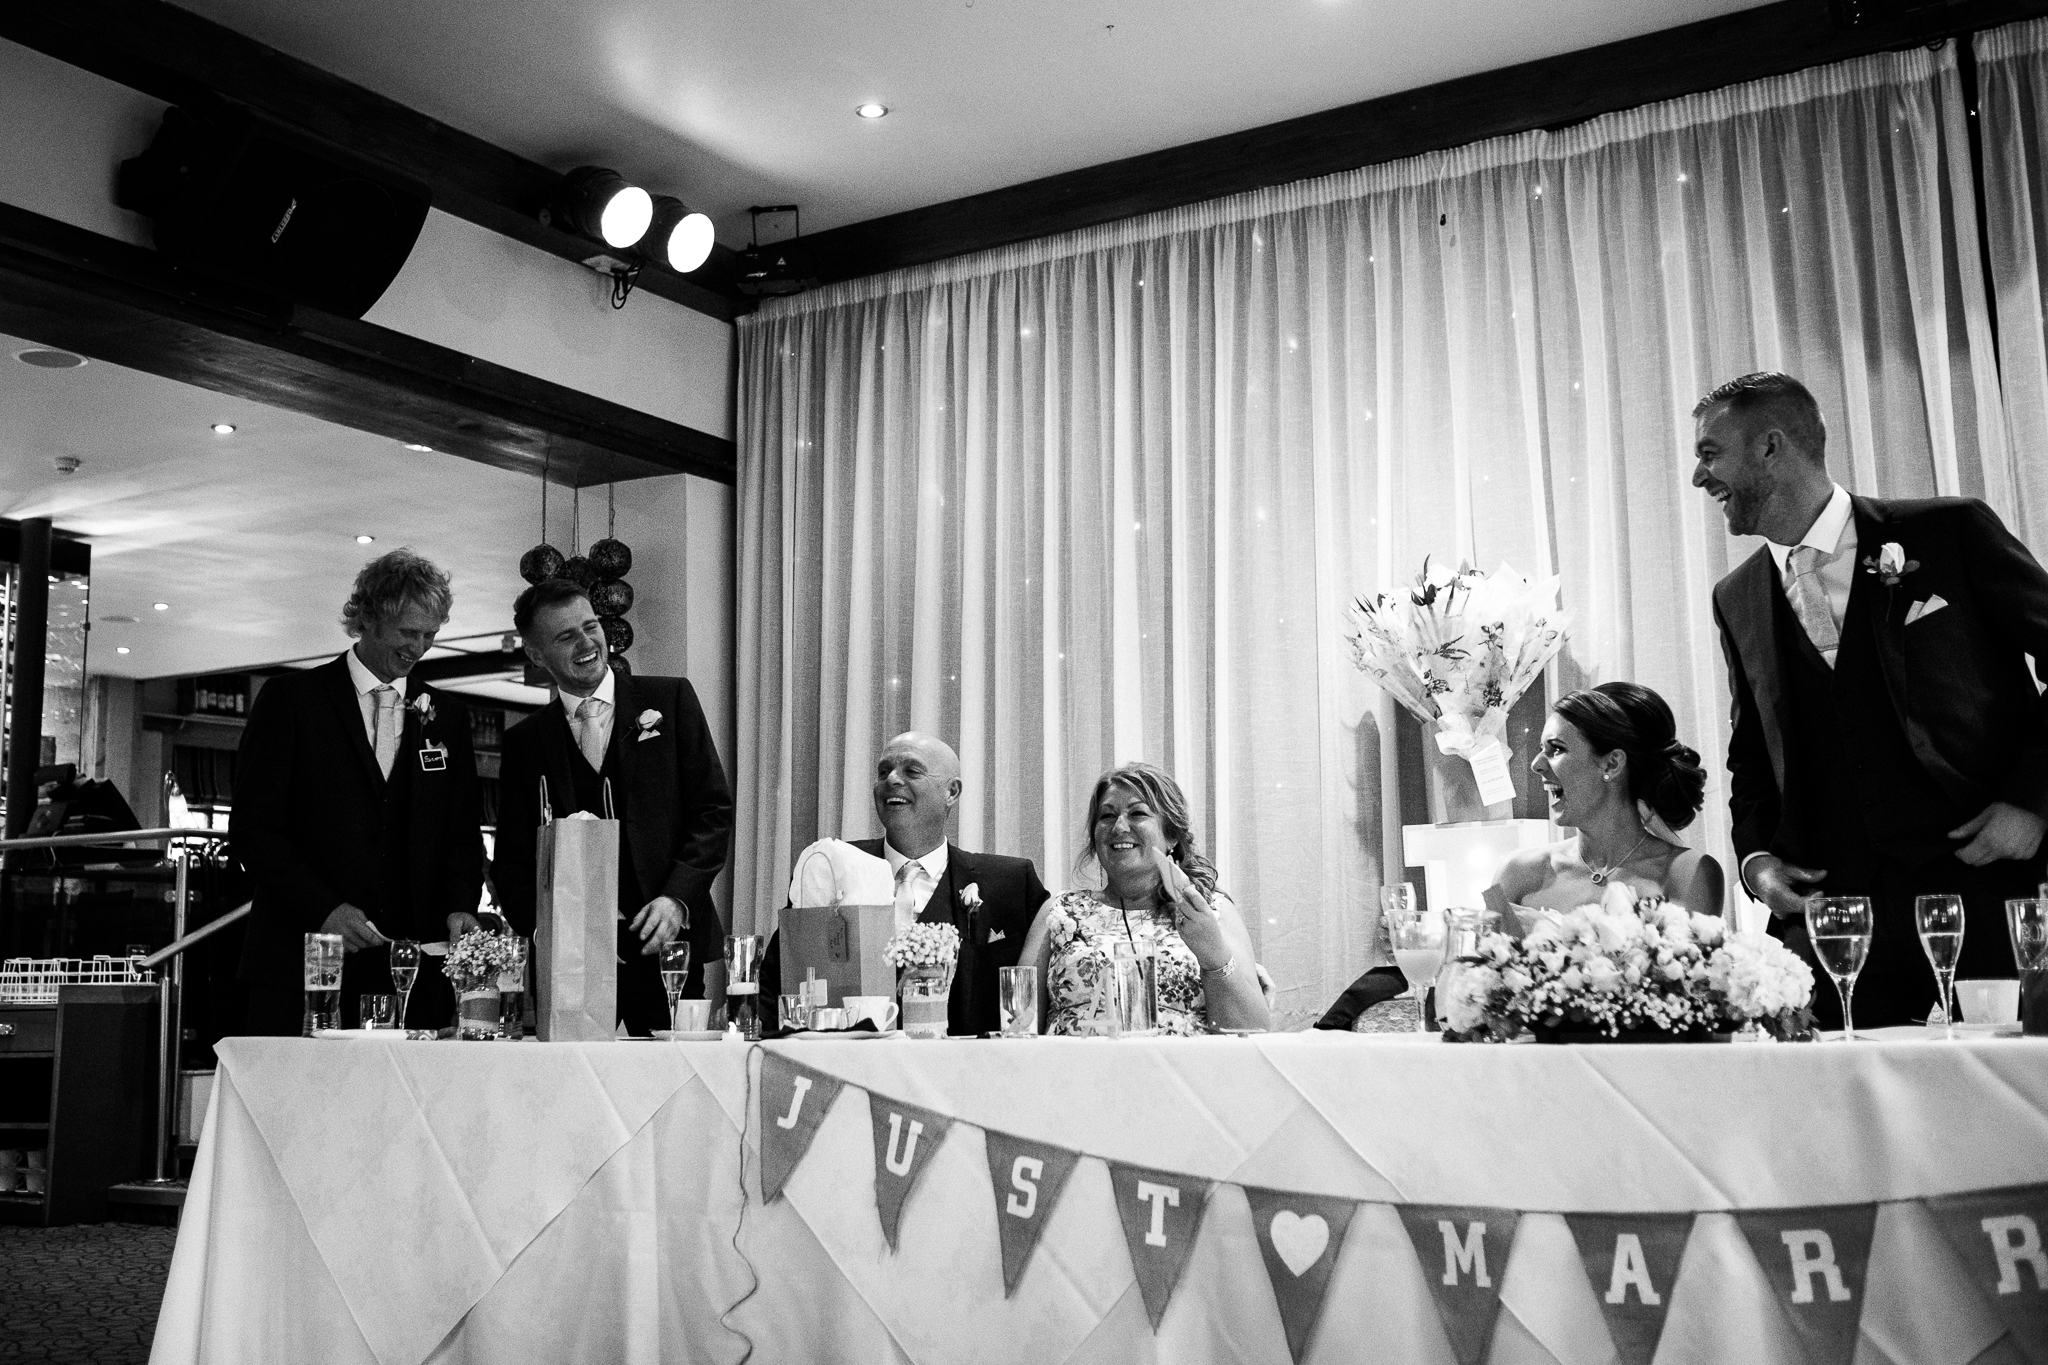 Staffordshire Moorlands Documentary Wedding Photography at The Three Horseshoes, Blackshaw Moor - Jenny Harper-33.jpg